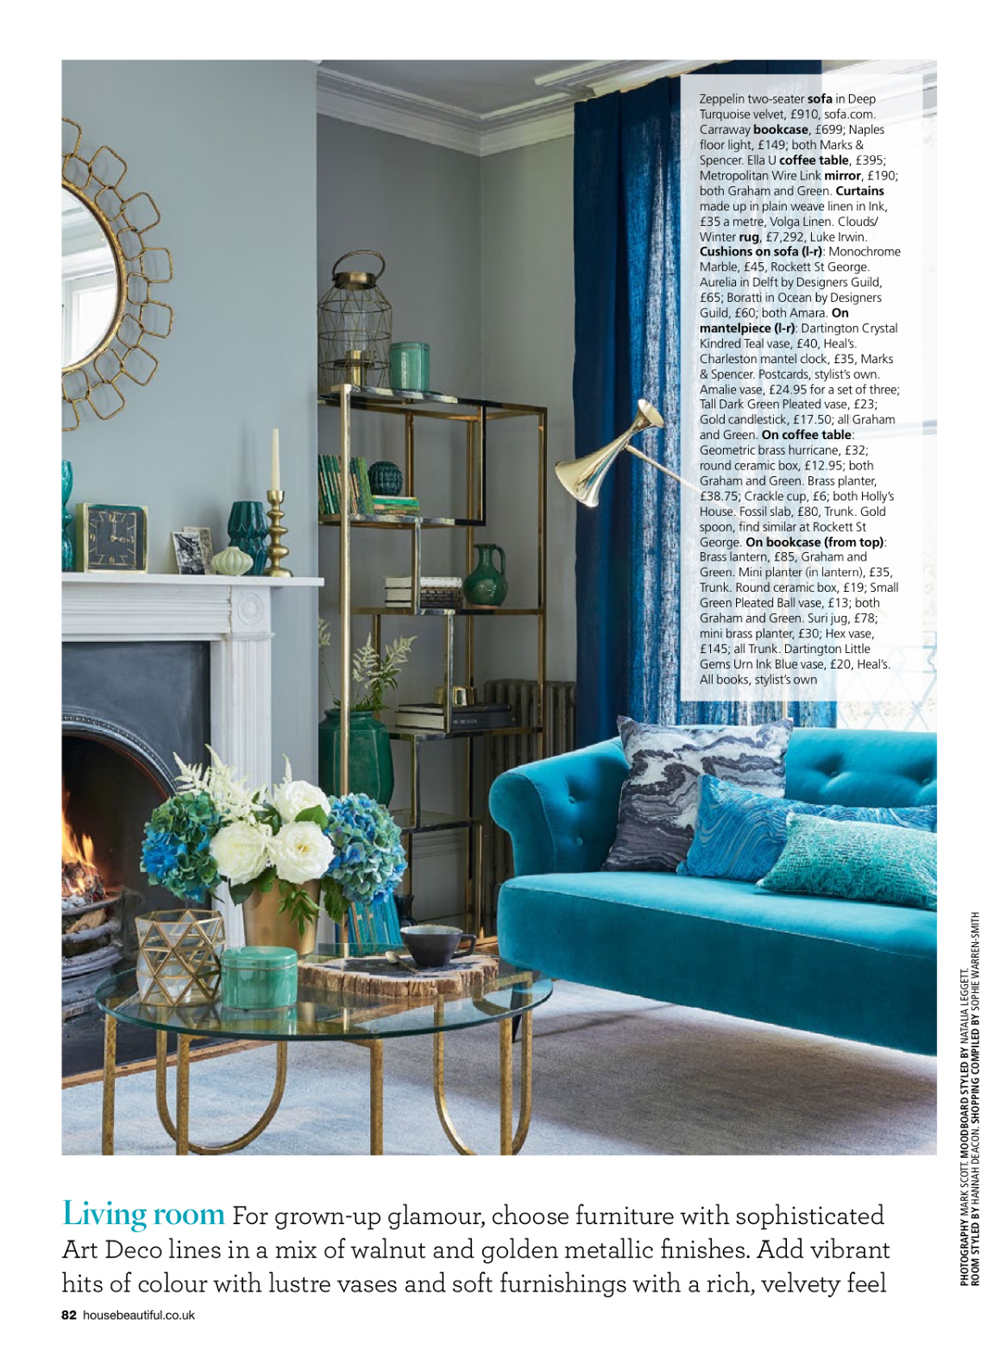 Carraway Bookcase - House Beautiful - Oct 15